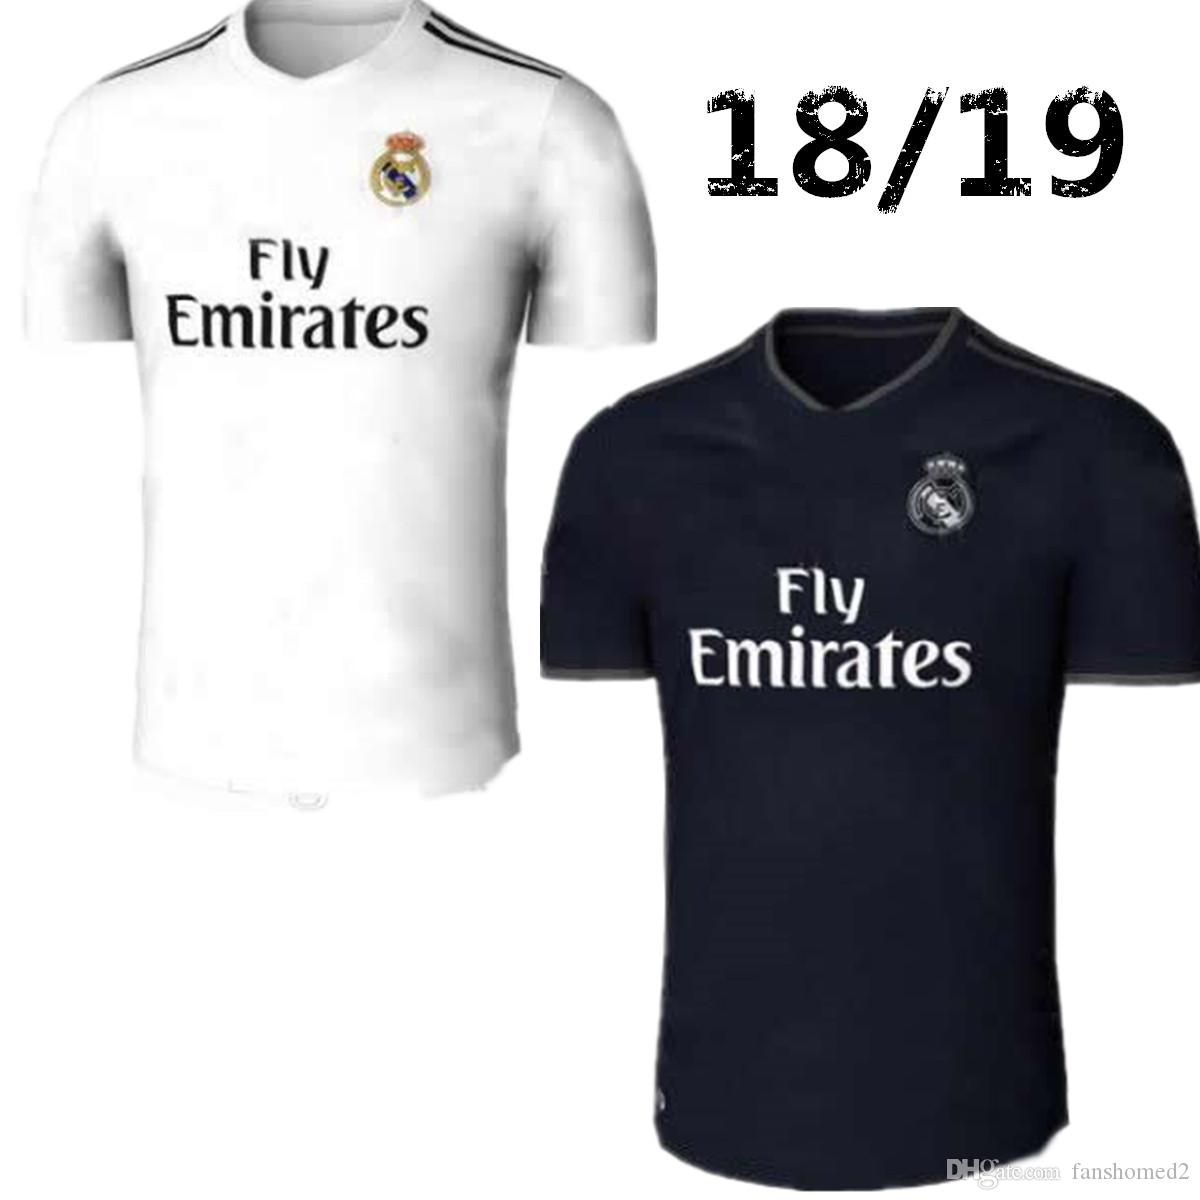 c61f65c4ff5 2019 18 19 Real Madrid Soccer Jerseys Home Away Romaldo 2018 2019 BALE  ASENSIO MARCELO KROOS ISCO BENZEMA Camiseta De Fútbol Football Shirts From  Fanshomed2 ...